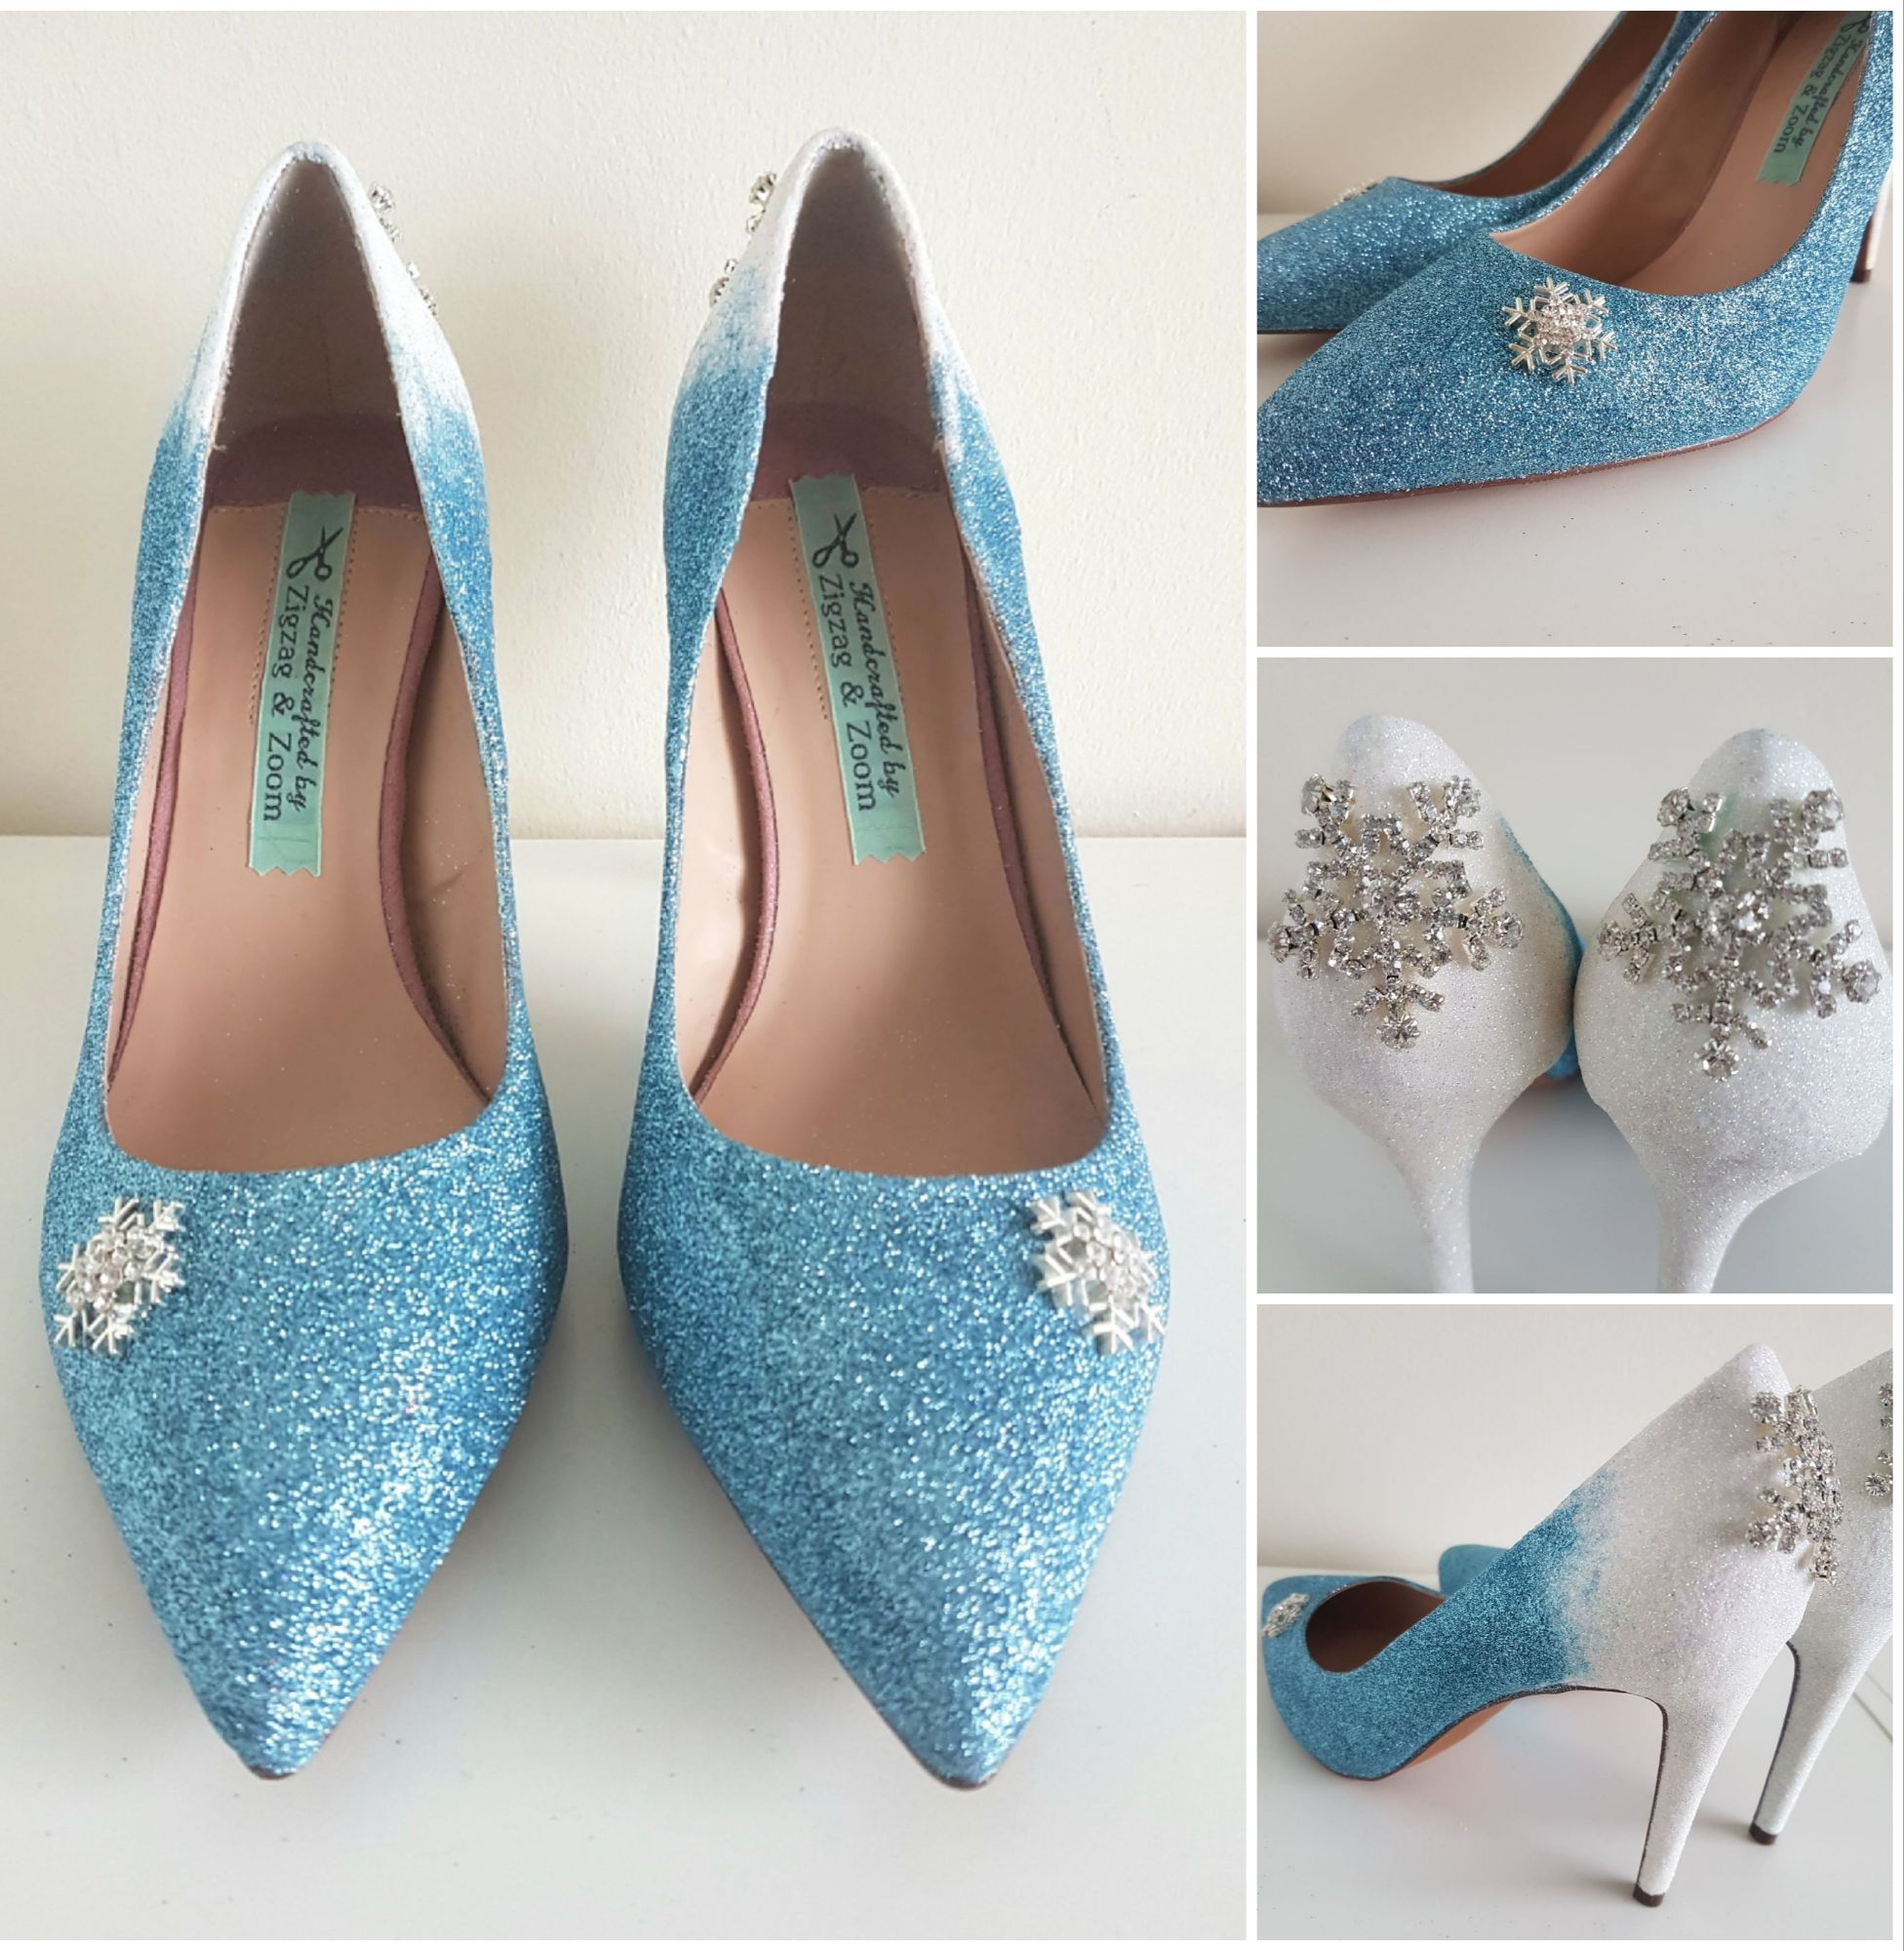 Tiffany blue, Frozen inspired wedding shoes, snowy winter heels